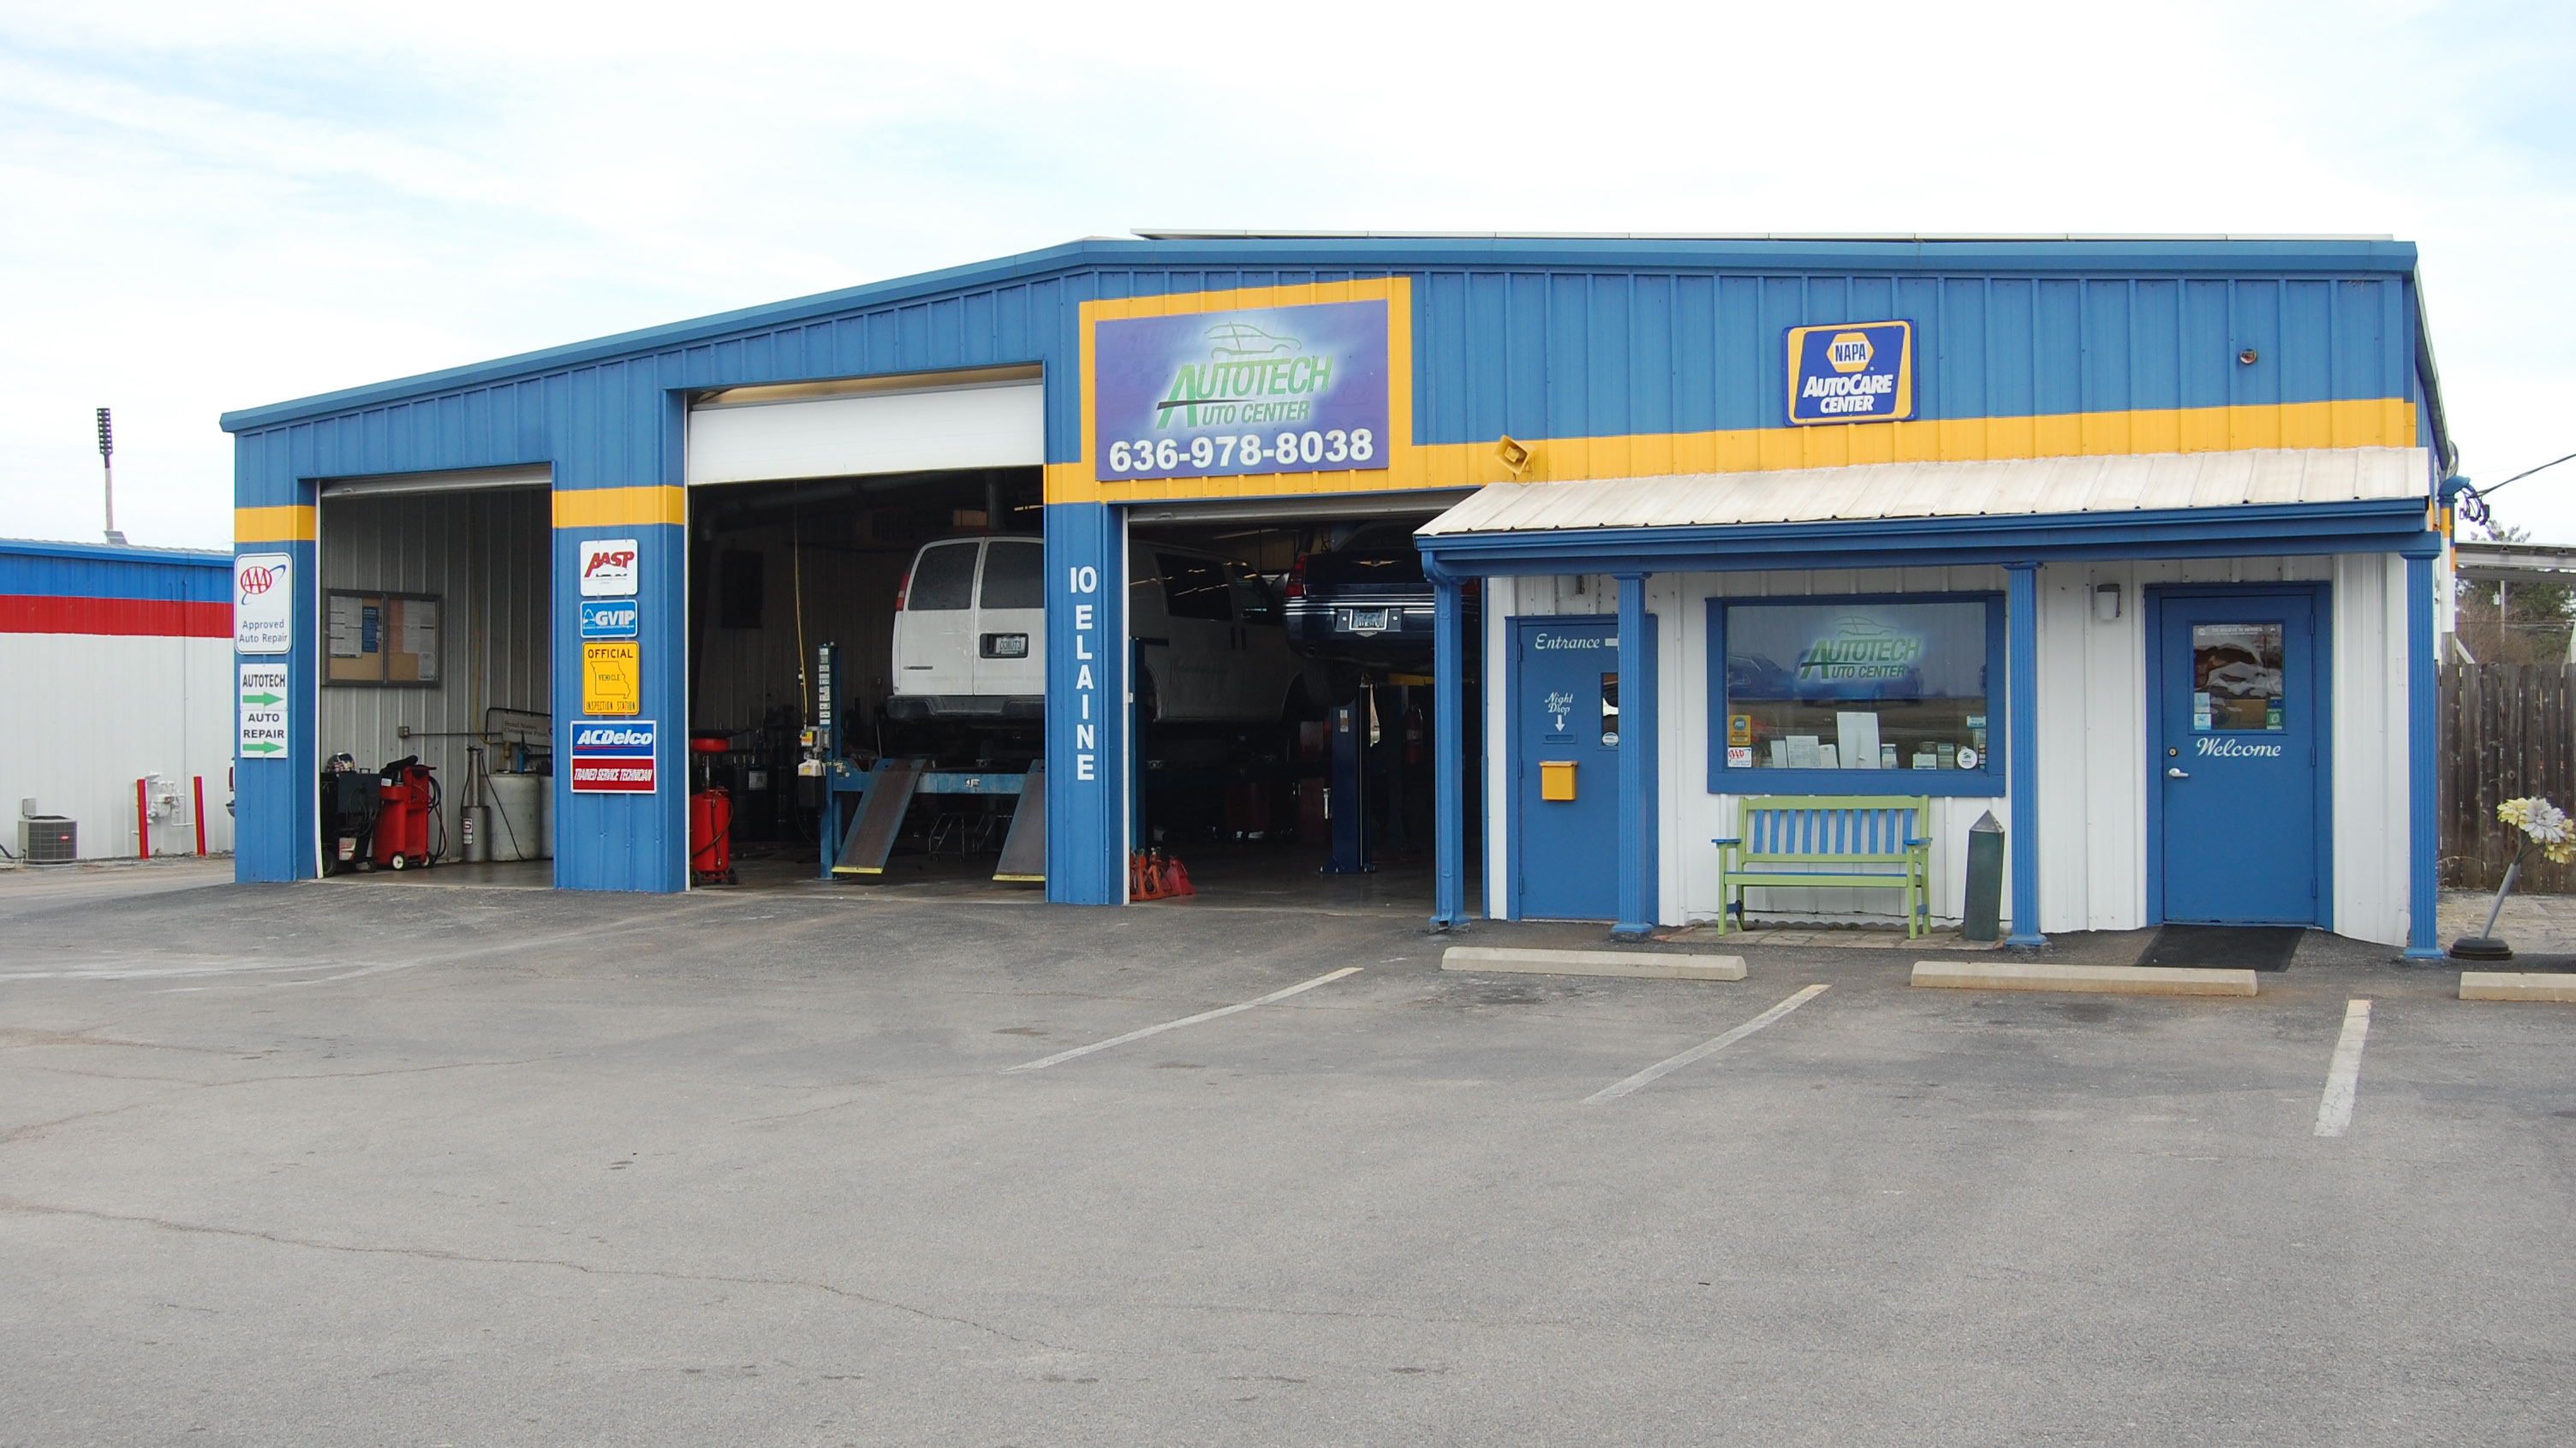 Autotech Tire & Auto Center